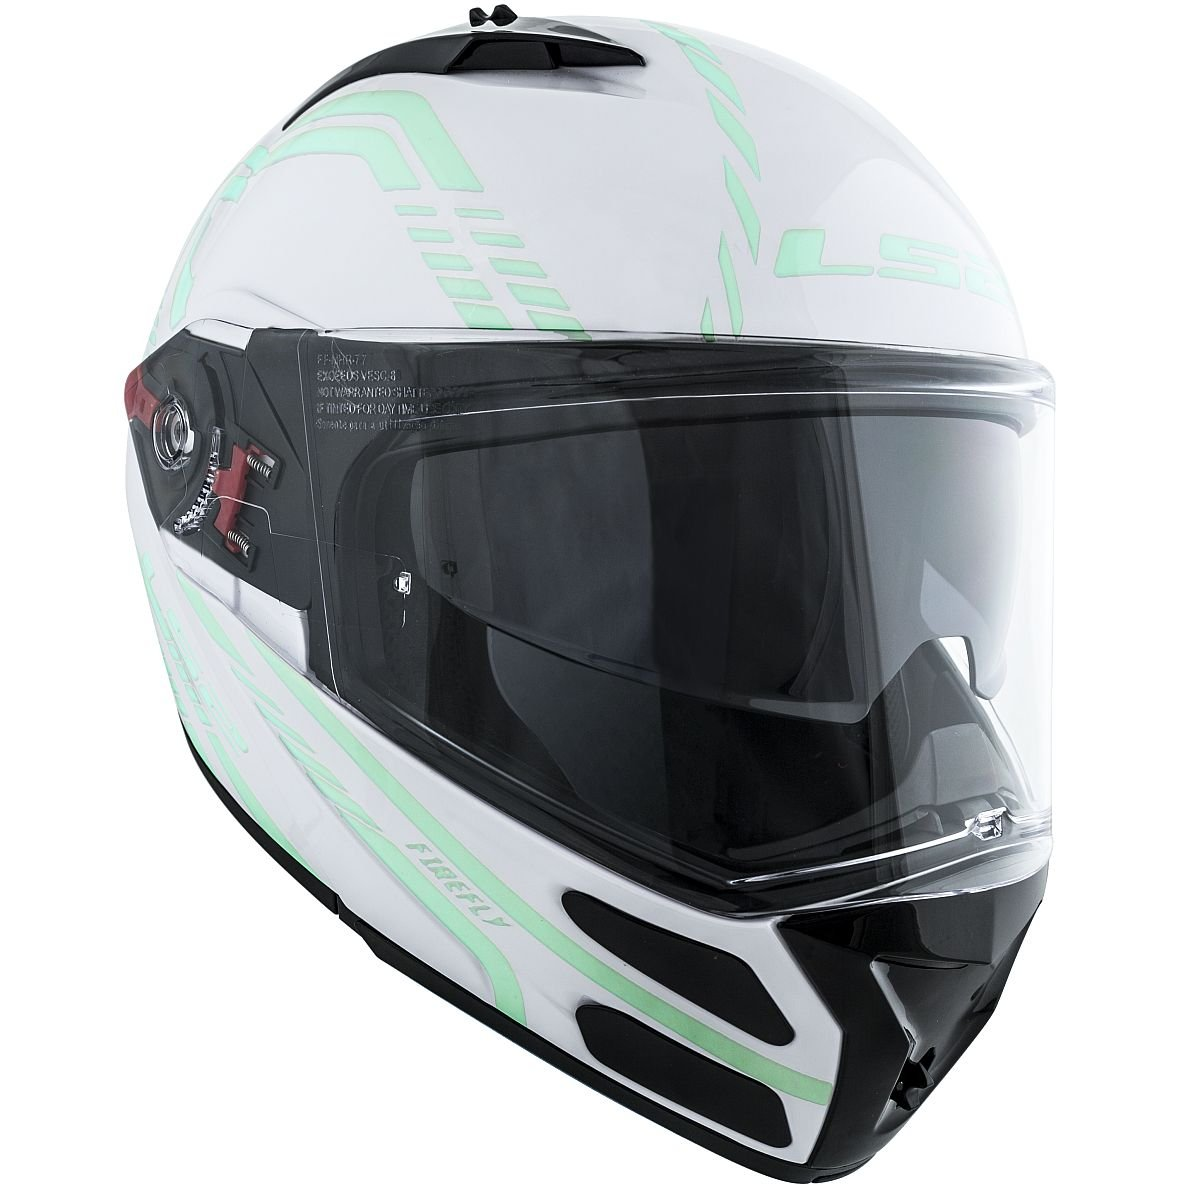 Amazon.com: LS2 Helmets Metro Firefly Modular Motorcycle Helmet with Sunshield (White, X-Small): Automotive